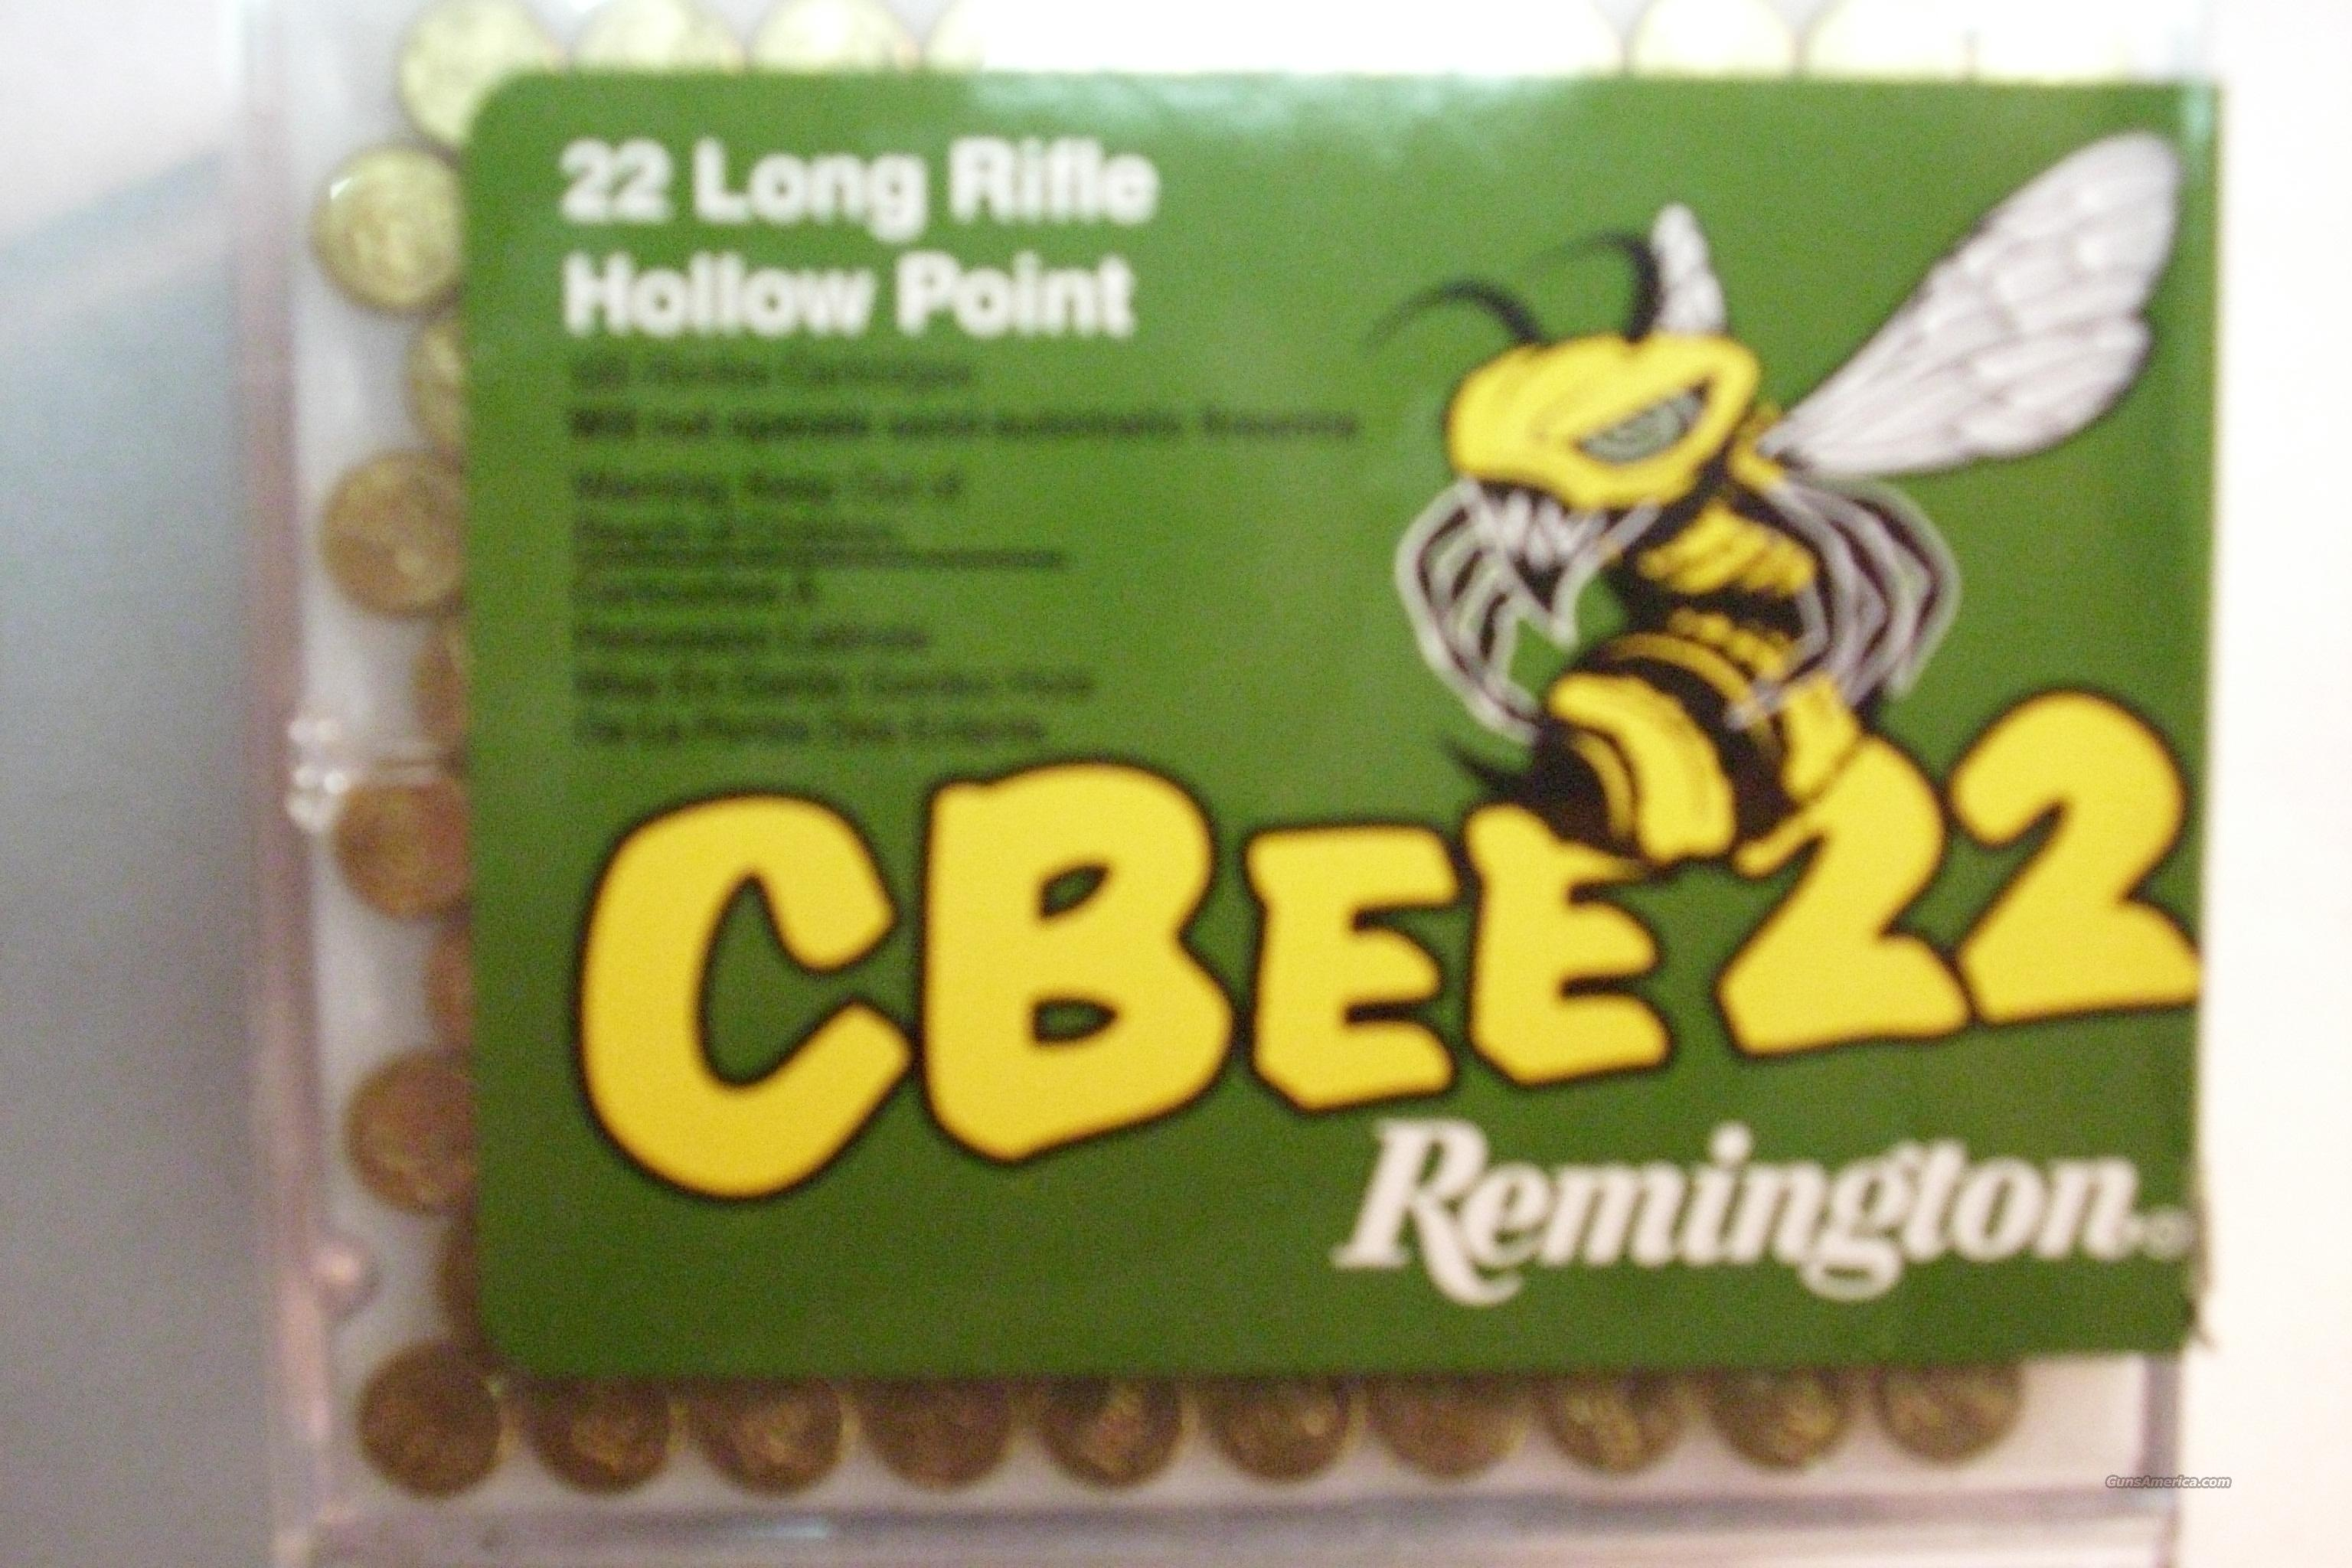 22 ammunition - Remington CBee22 Low Noise 500rounds  Non-Guns > Ammunition